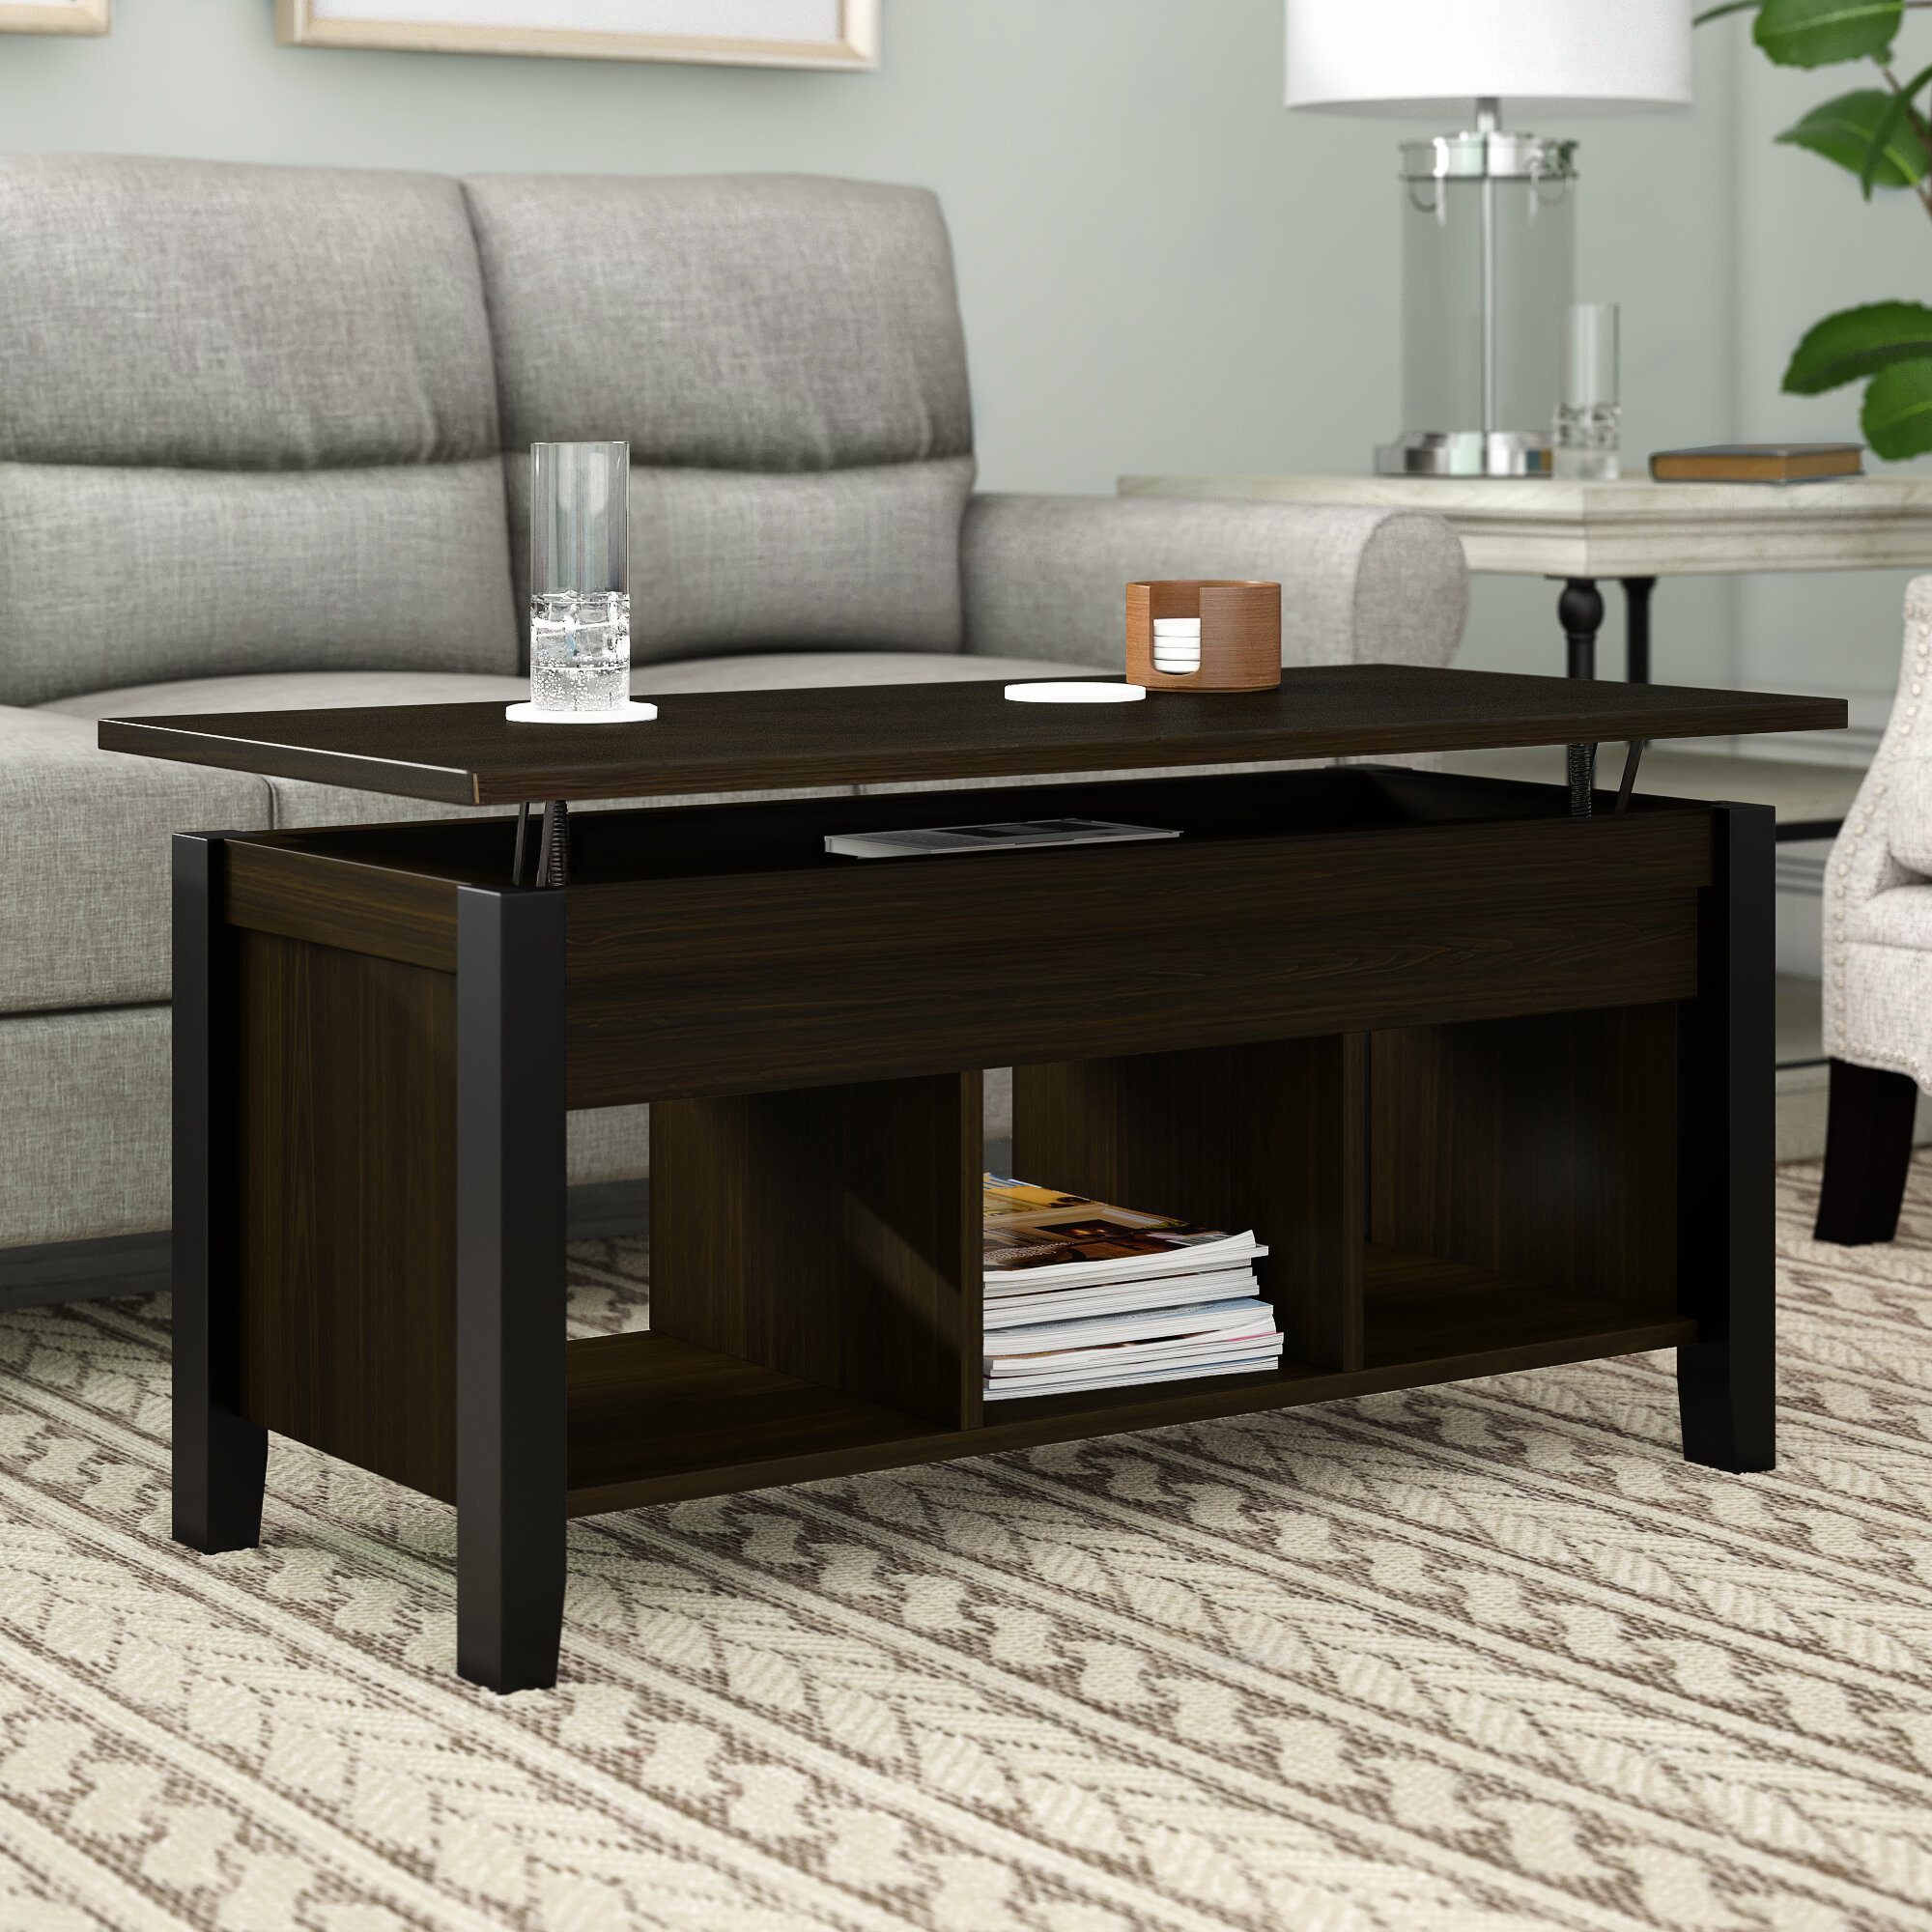 Beige Wood Lift Top Coffee Tables You Ll Love In 2021 Wayfair